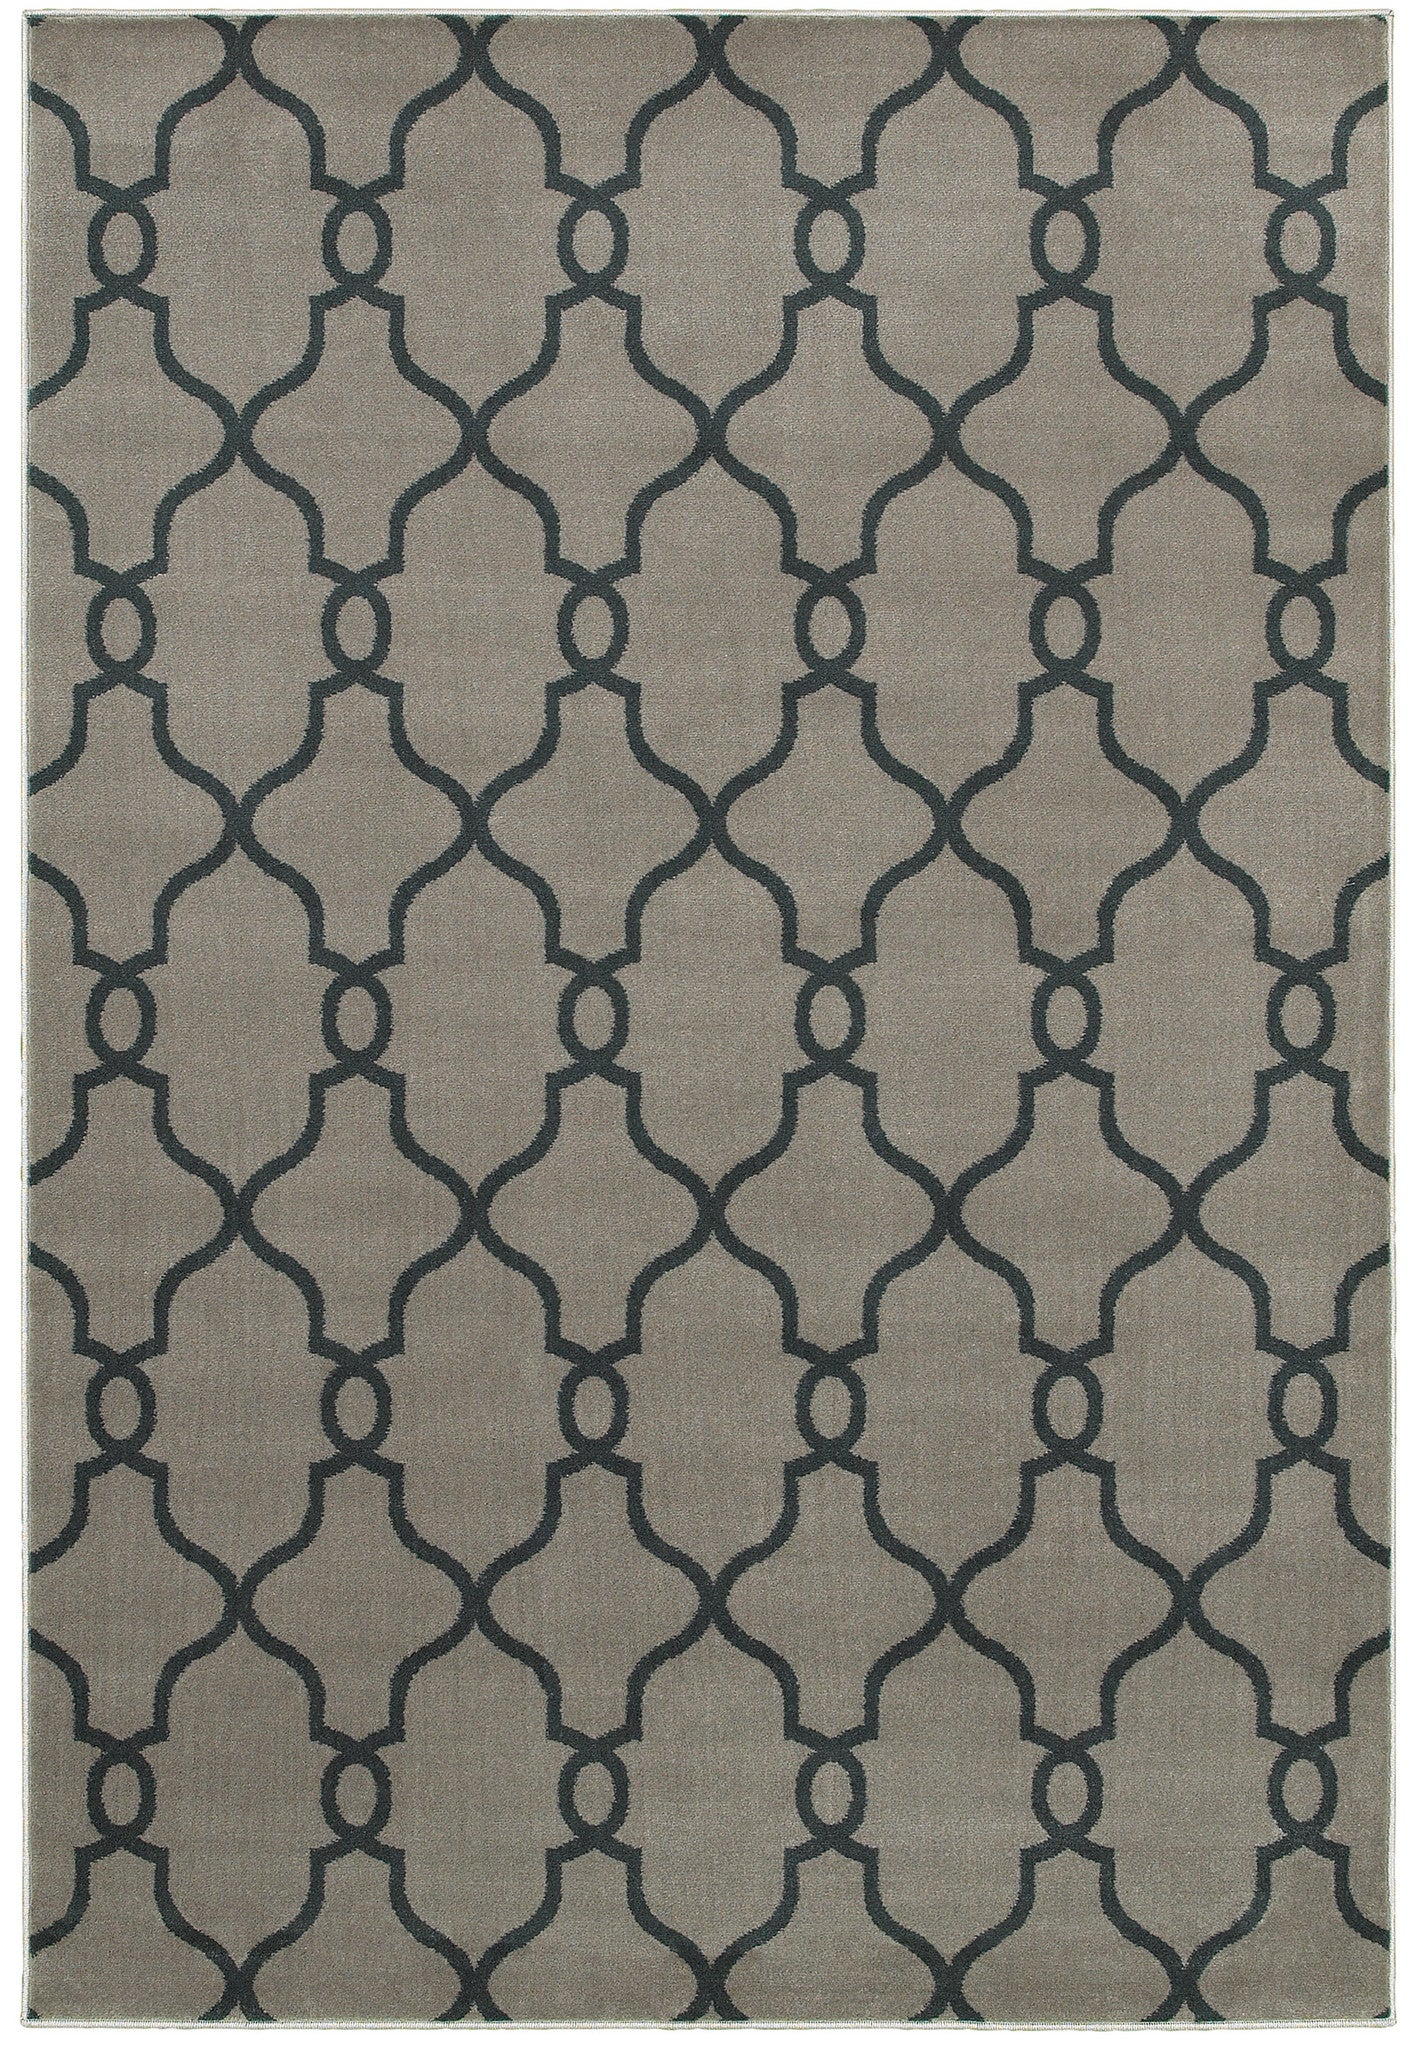 LR Resources Adana 80985 Dark Grey Area Rug